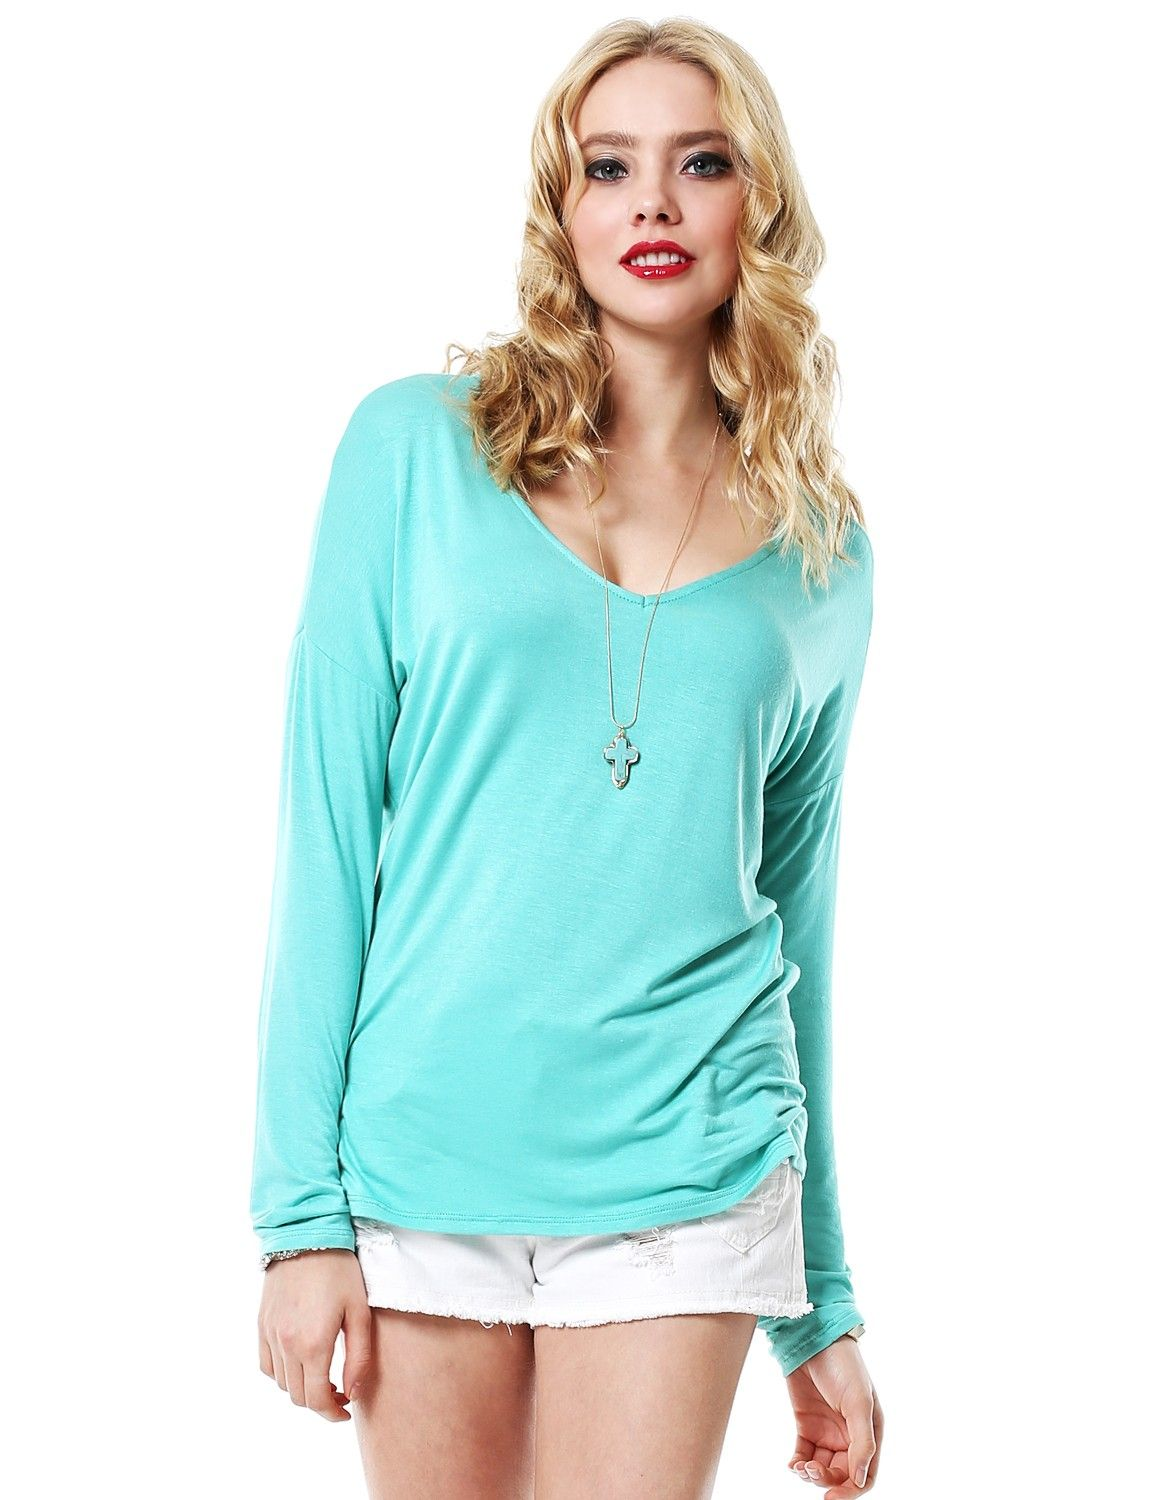 Basic Loose Fit Long Sleeve Blouse Top .  http://www.11foxy.com/tops.html #womentops #womentop #top #shopping #clothes #california #11foxy